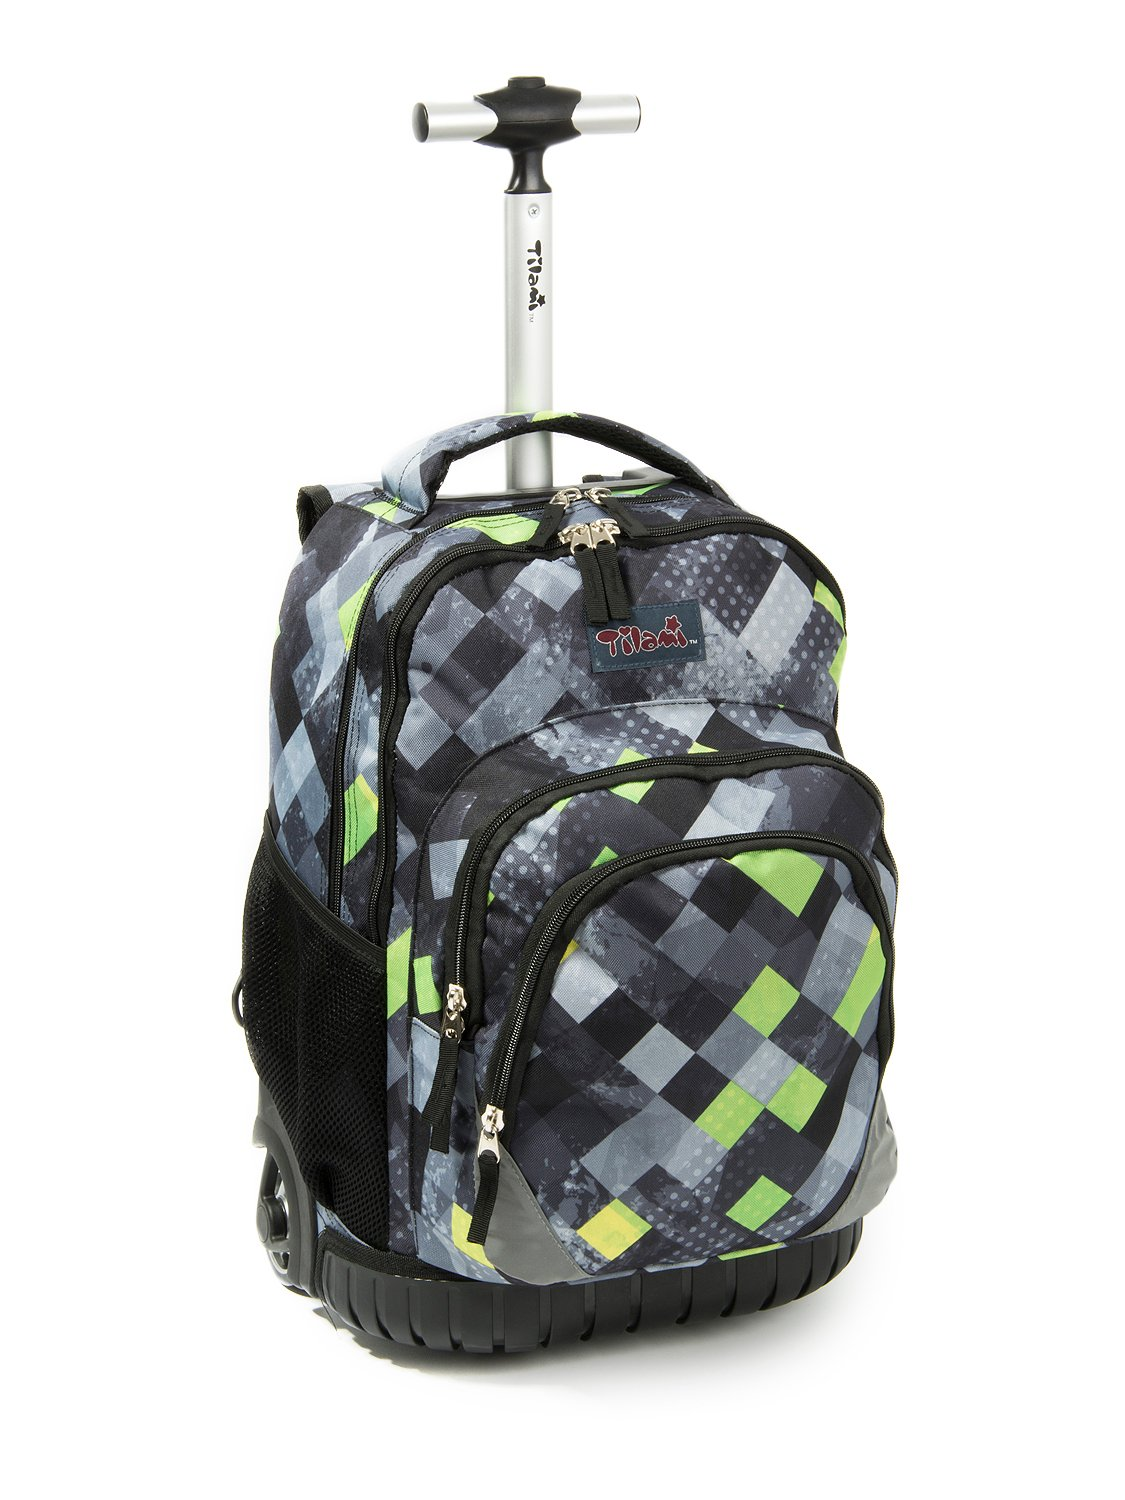 Tilami Rolling Backpack Armor Luggage School Travel Book Laptop 18 Inch Multifunction Wheeled Backpack for Students ... (Black Checkered 1) by Tilami